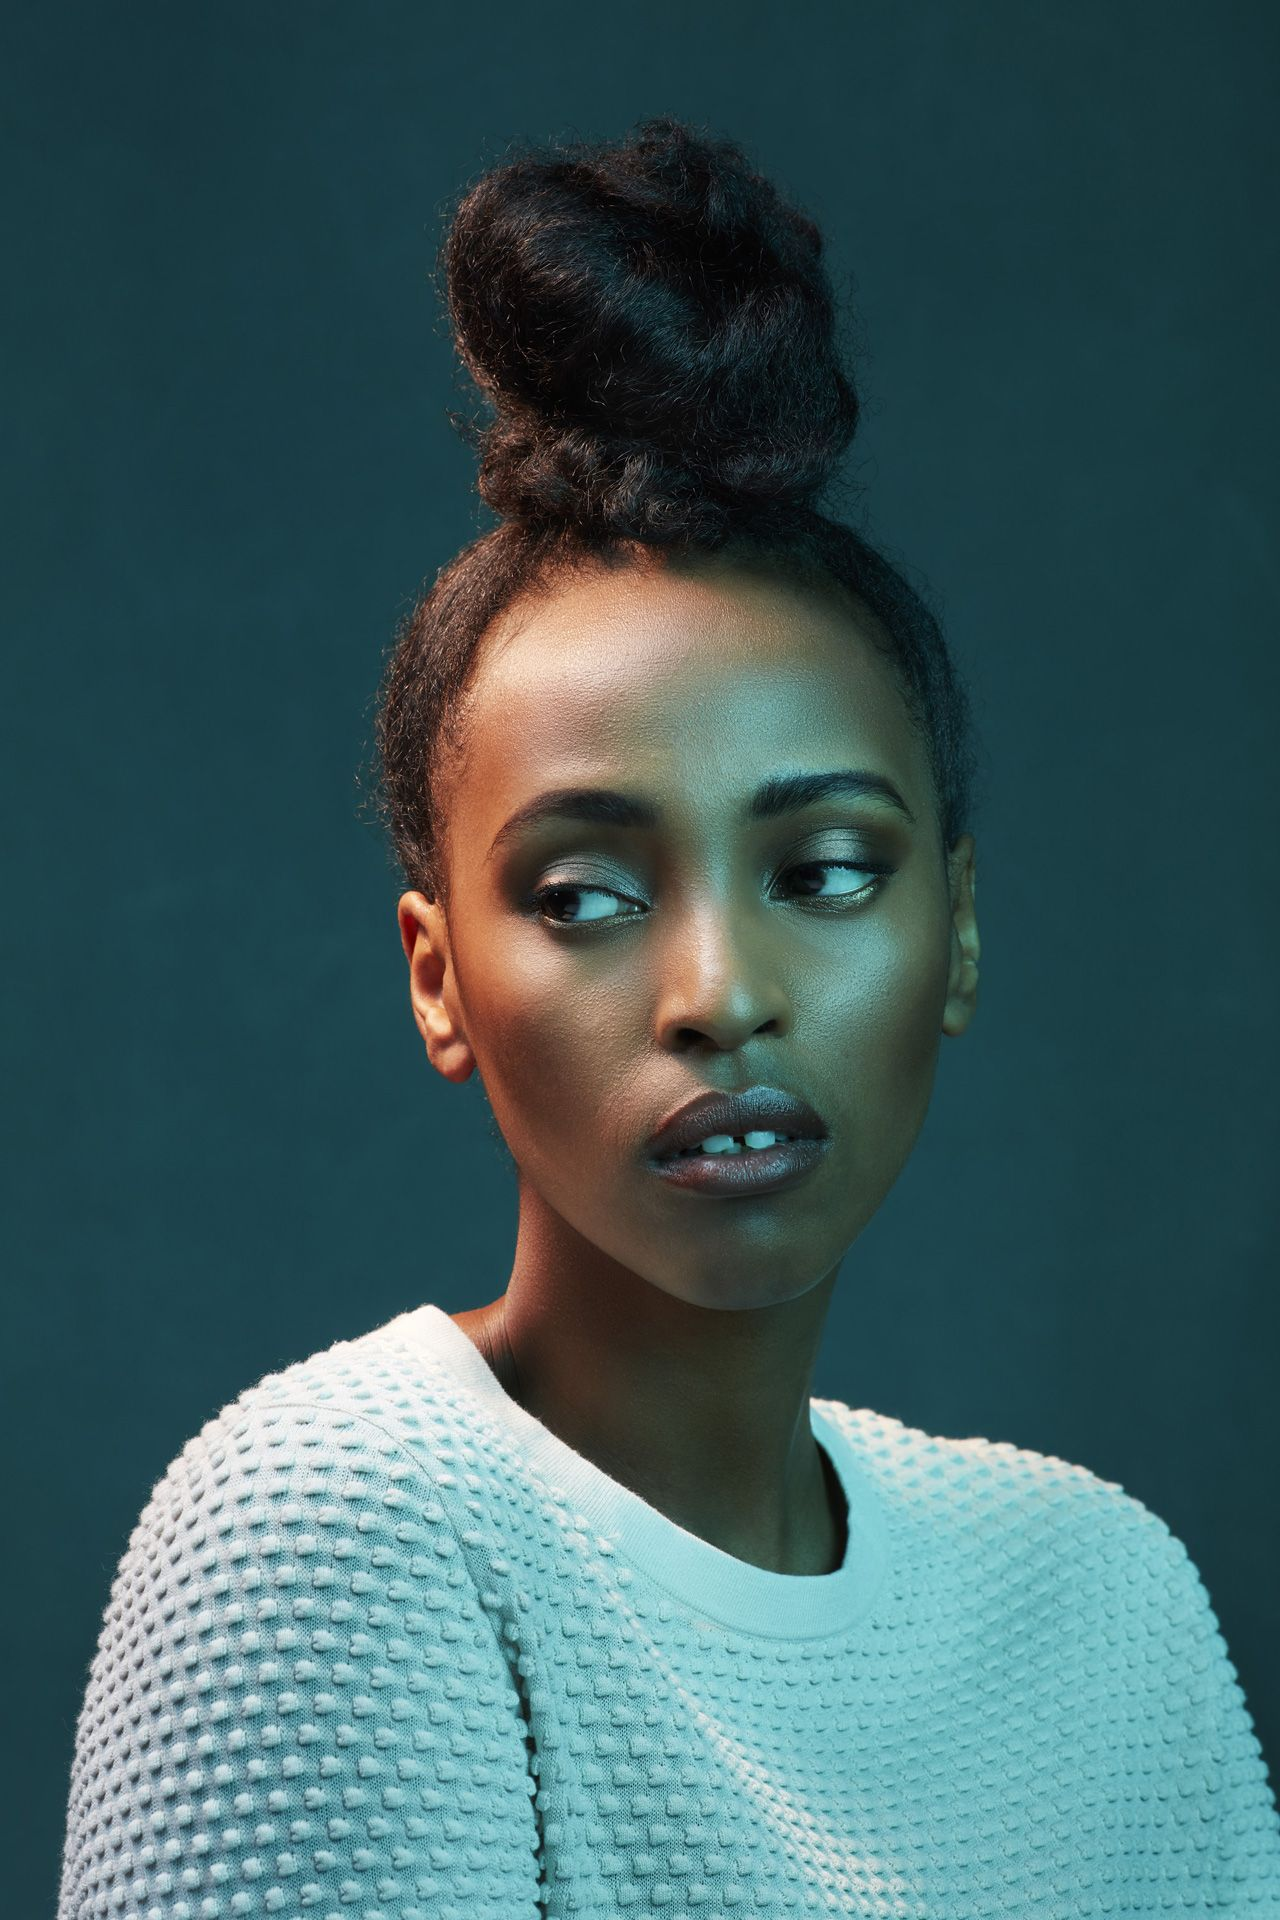 portrait of black woman wearing white textured sweater hair up looking pensively away on dark green background by Simon Duhamel for creative project Introspect